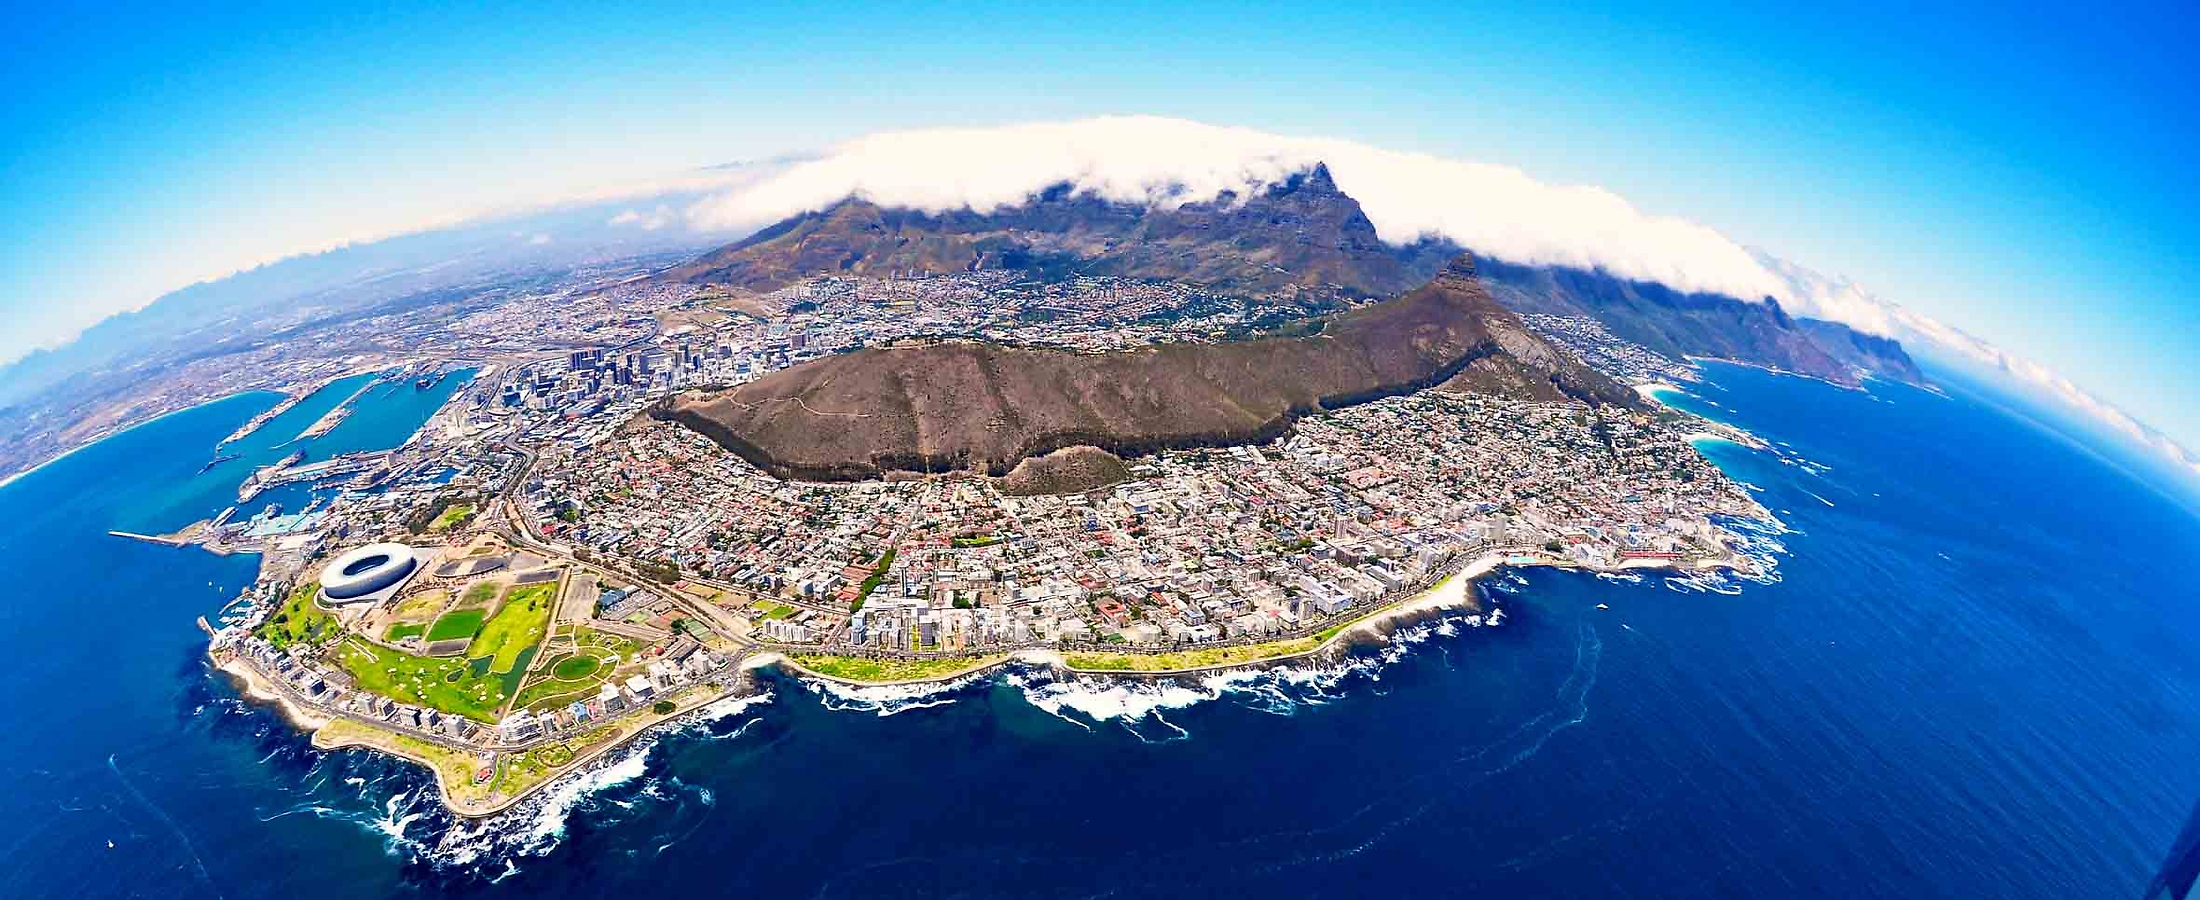 A Taste of South Africa, 2020 - Vacation Packages by